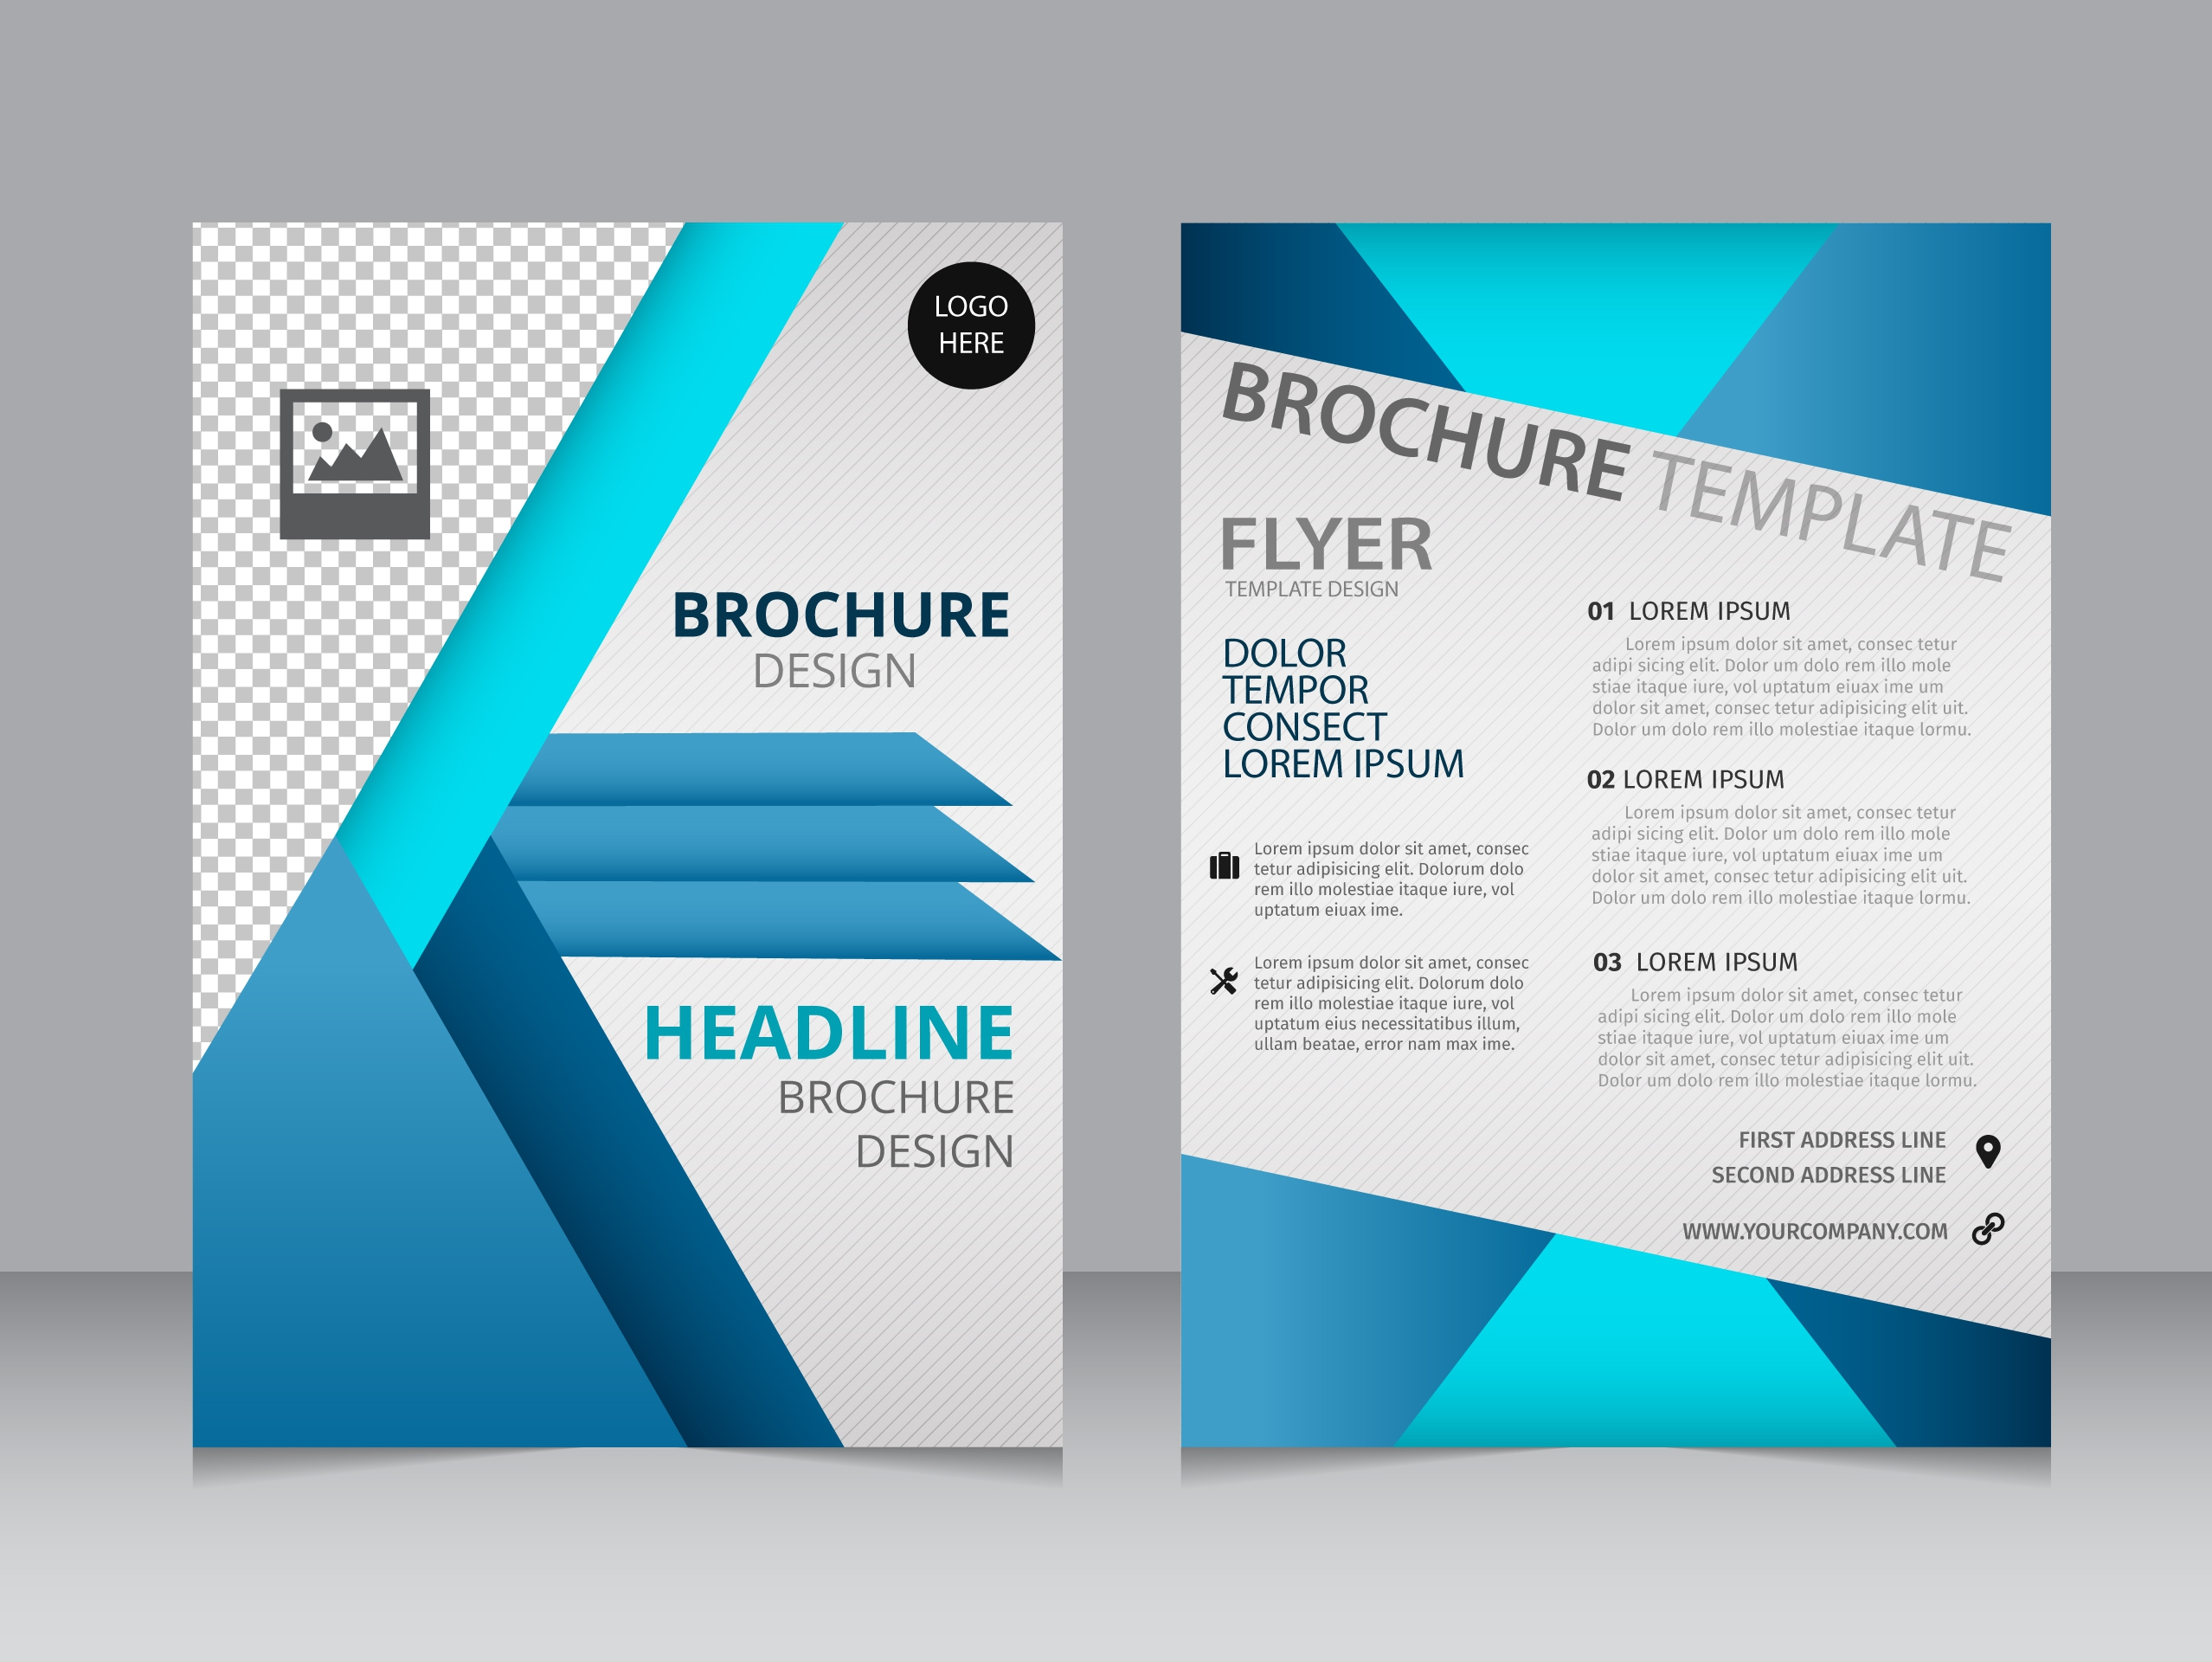 11 free sample travel brochure templates printable samples for Download free brochure templates